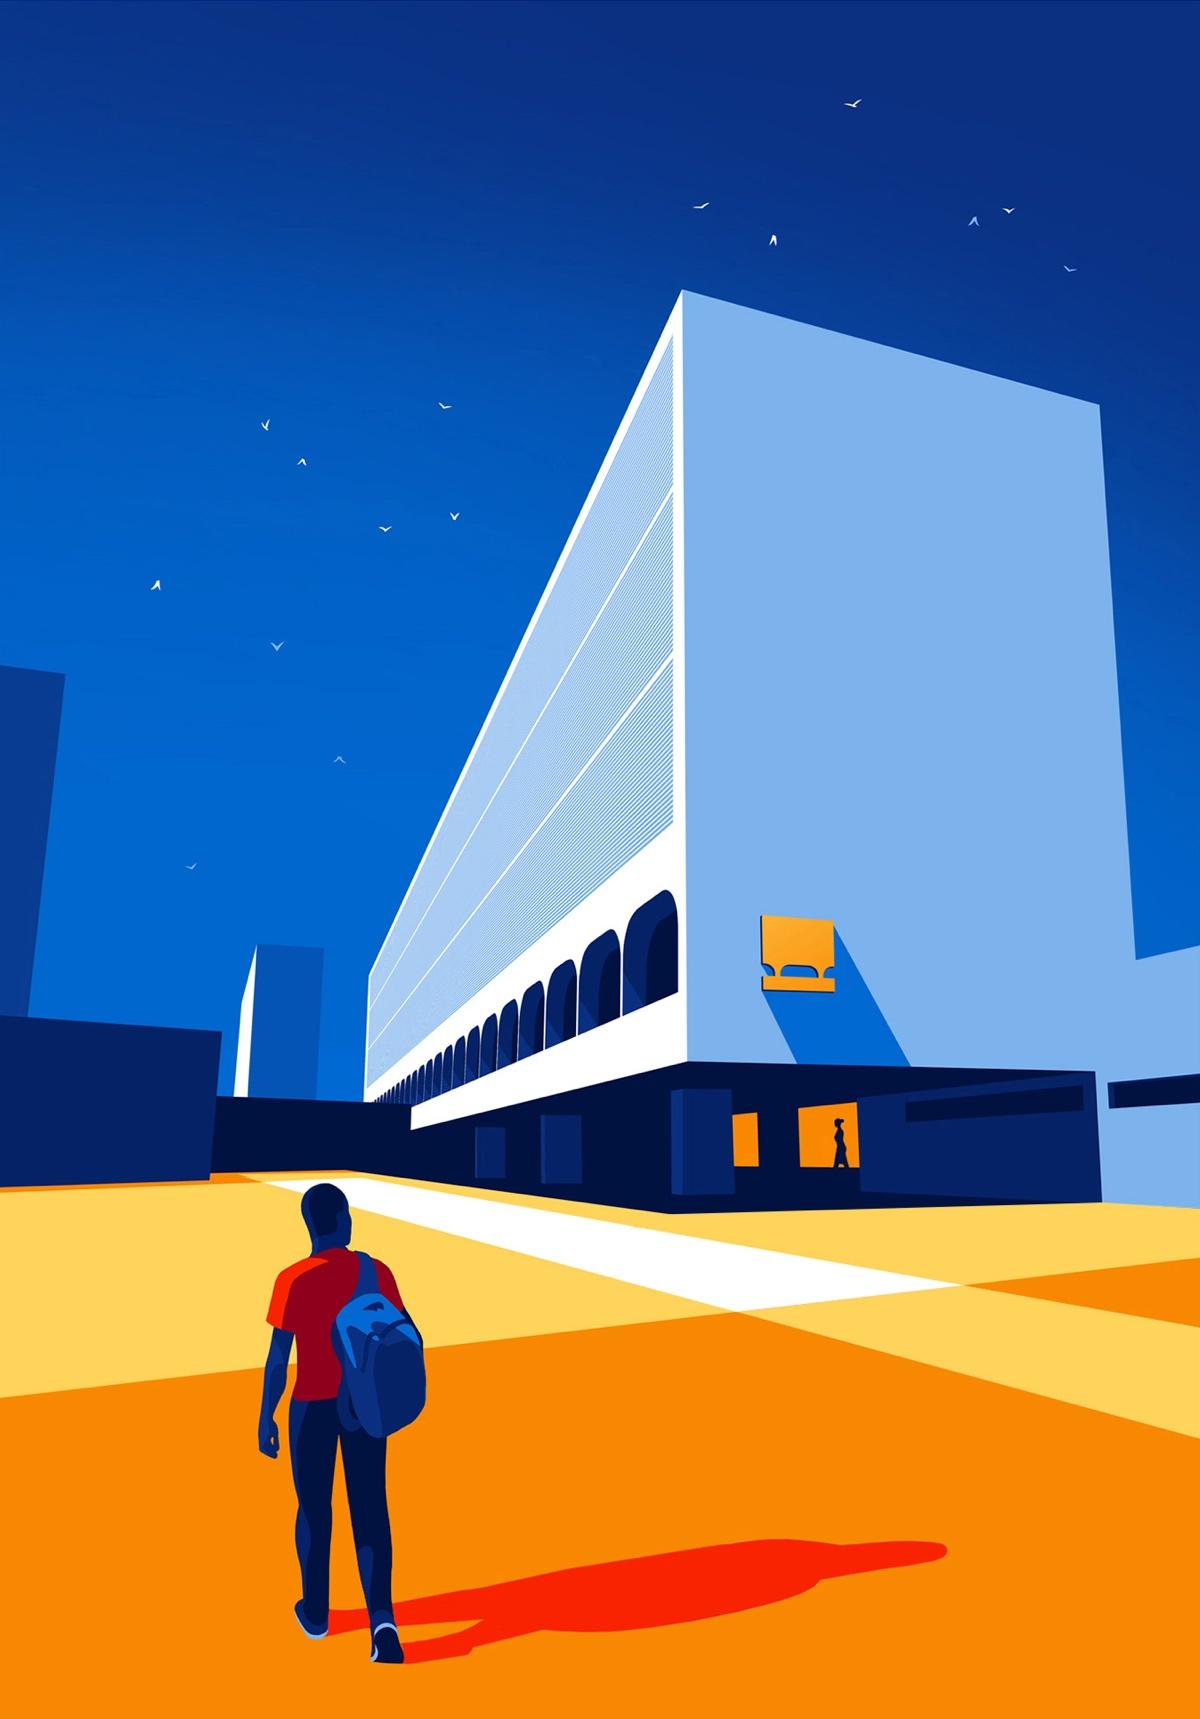 oscar-niemeyer-architecture-illustrations-levente-szabo-2